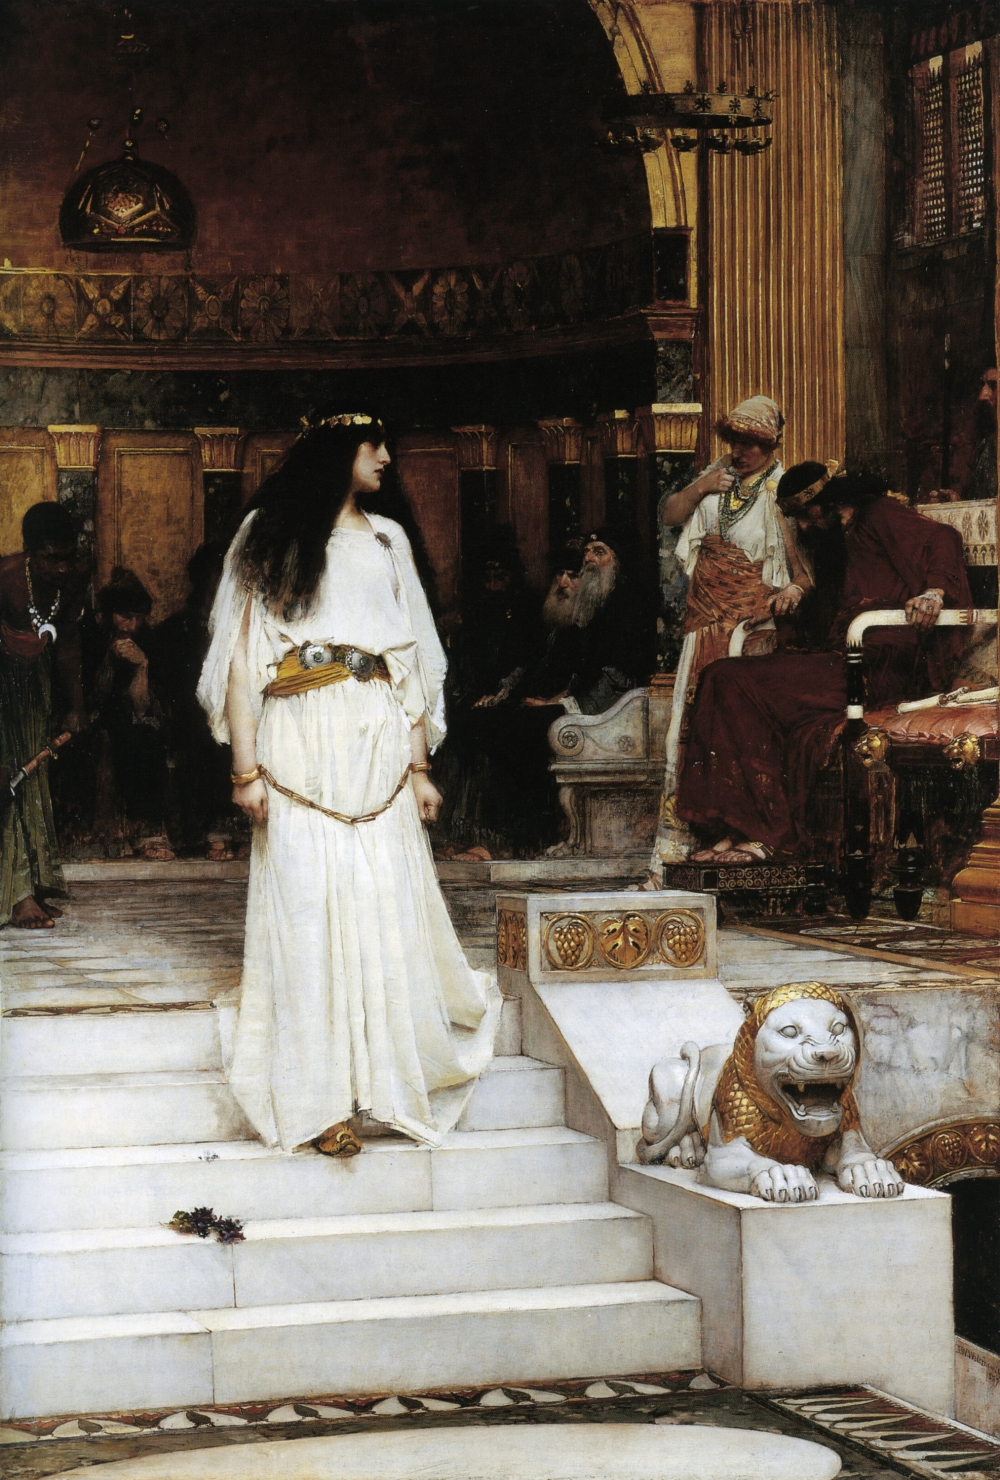 John_William_Waterhouse_-_Mariamne_Leaving_the_Judgement_Seat_of_Herod,_1887.jpg